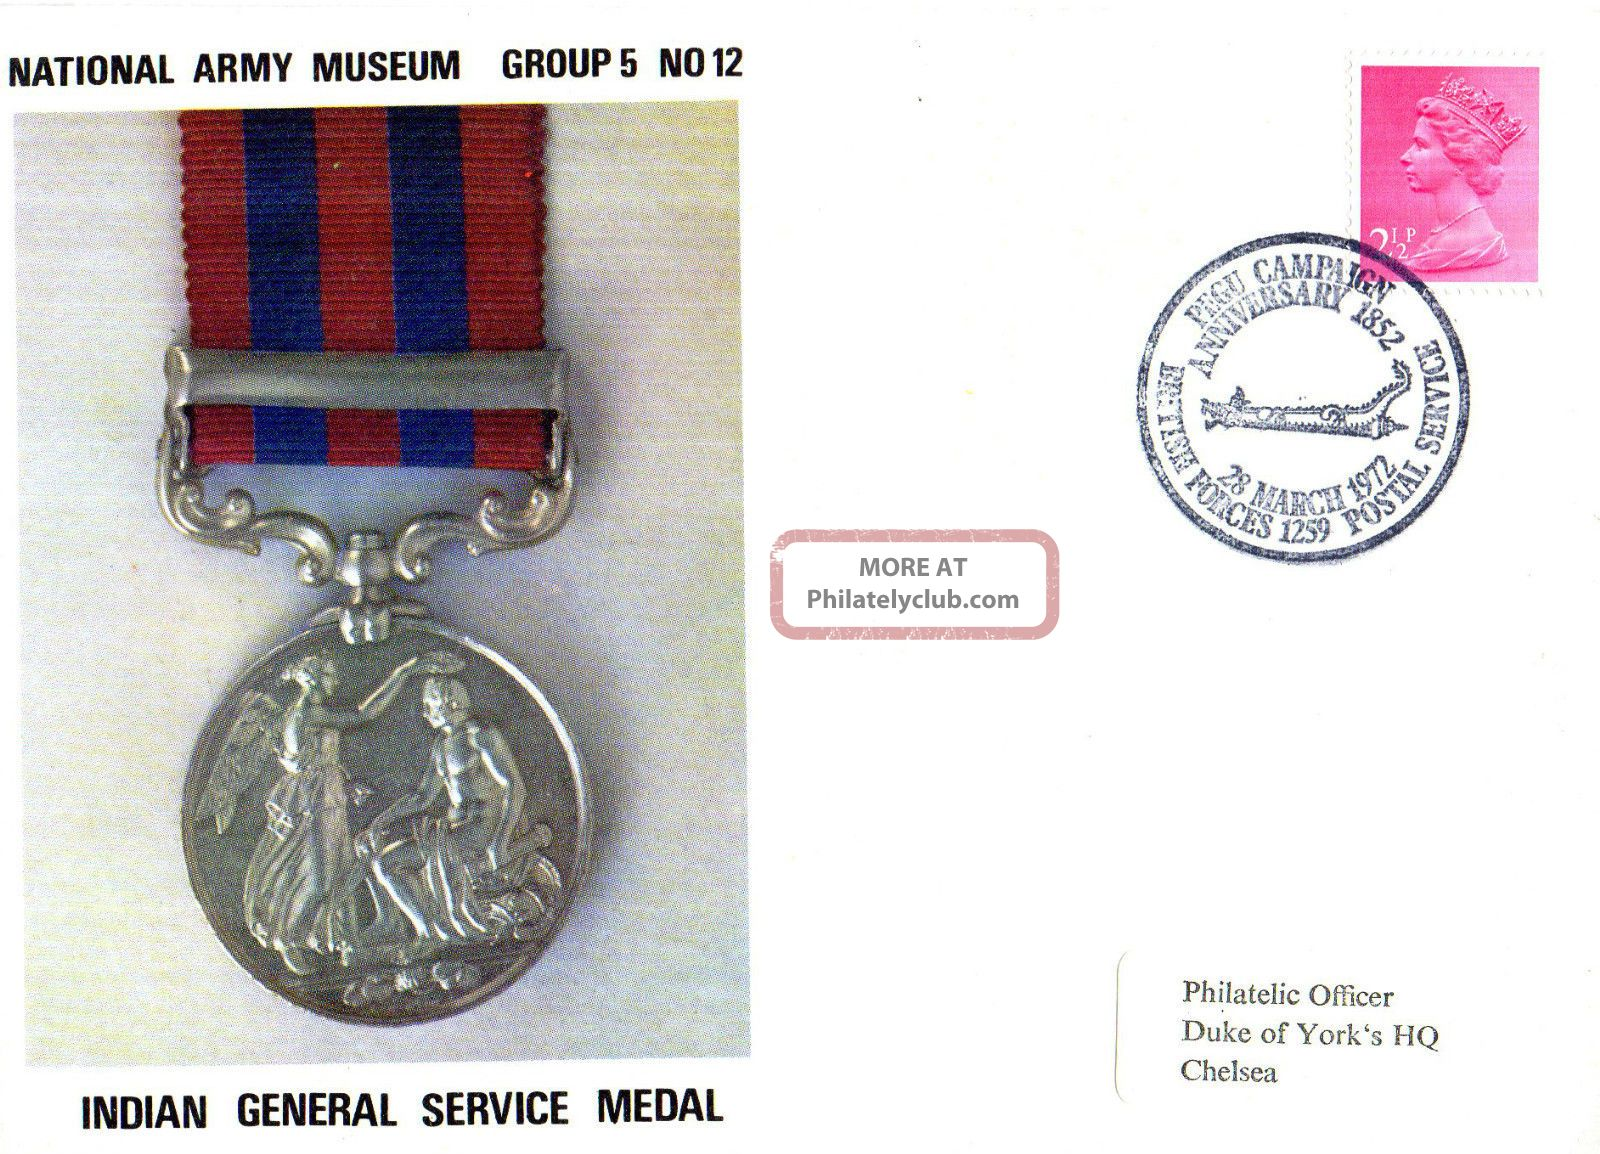 1972 Indian General Service Medal 5/12 Army Museum Commemorative Cover Shs Topical Stamps photo